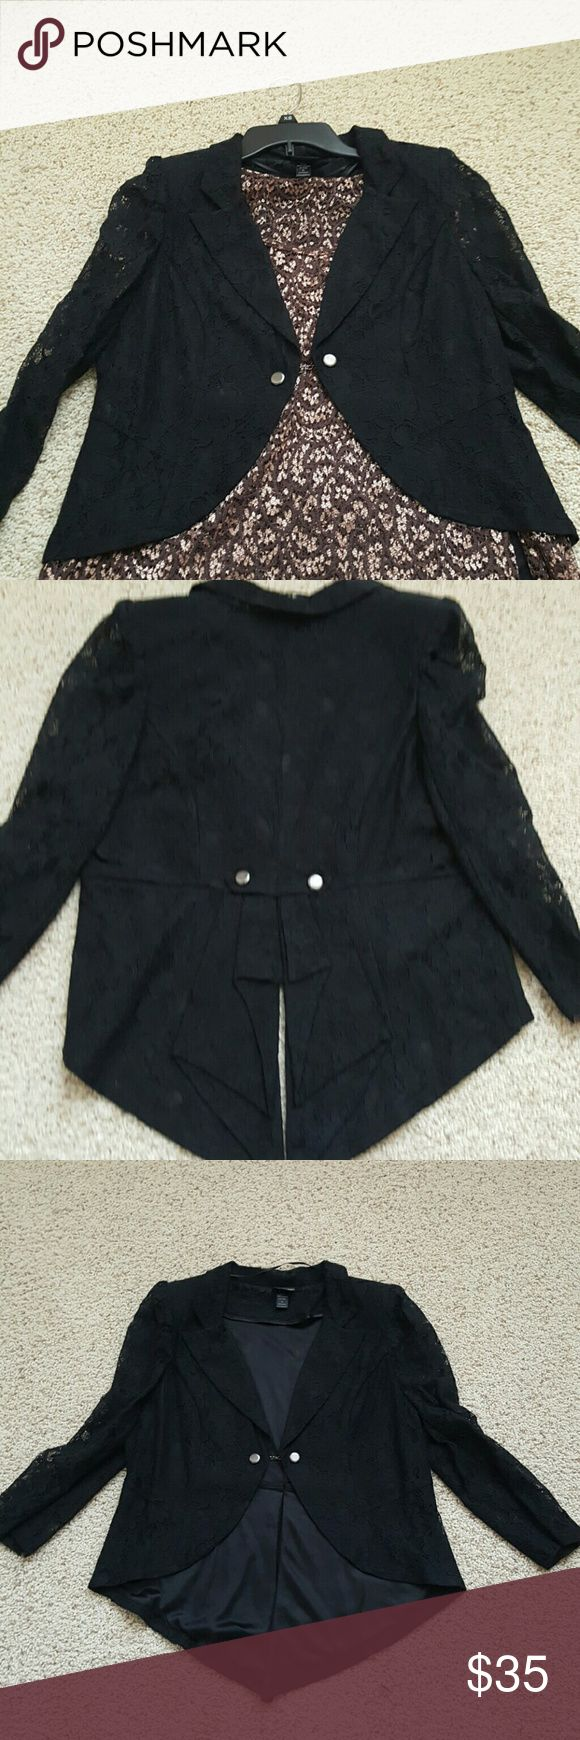 Buckle Daytrip black lace tuxedo jacket Black lace , 3/4 sleeves. Only worn once! Short in front with tails in back. No snags or rips etc. Iis,an XL, but can definitely fit a large as well. Smoke/pet free home. Daytrip Jackets & Coats Blazers